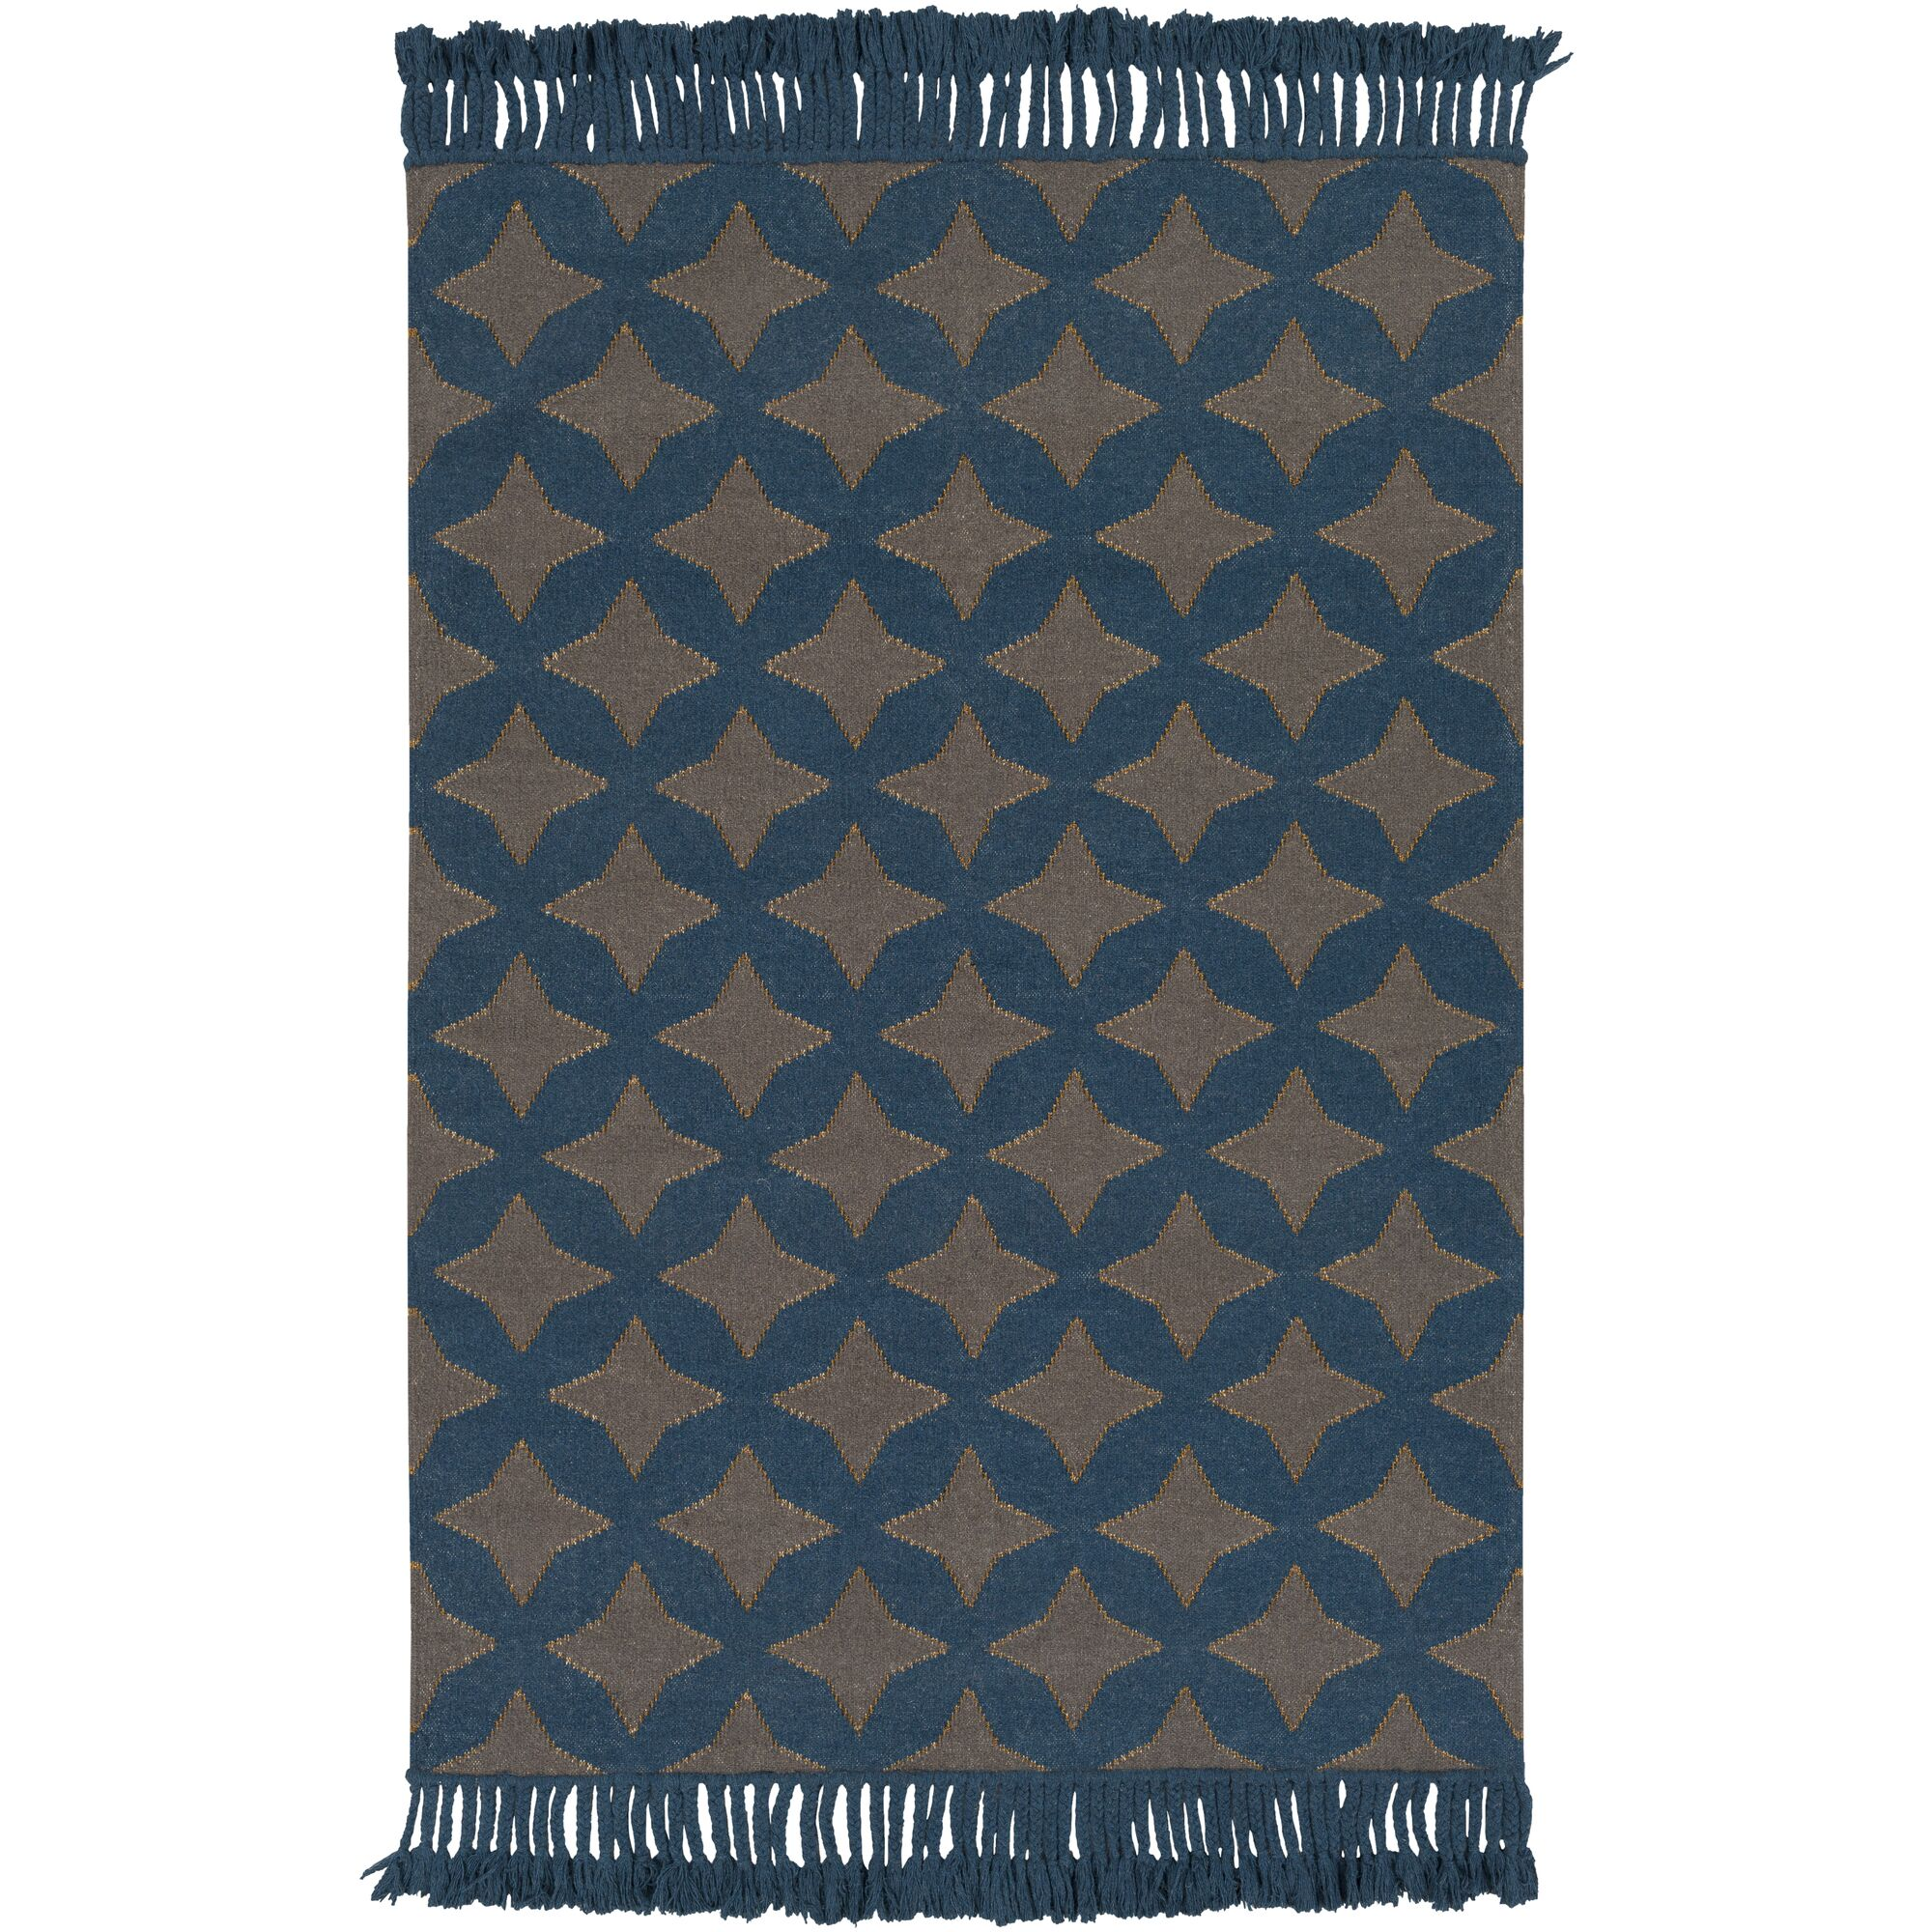 Roselawn Charcoal Area Rug Rug Size: Rectangle 5' x 7'6